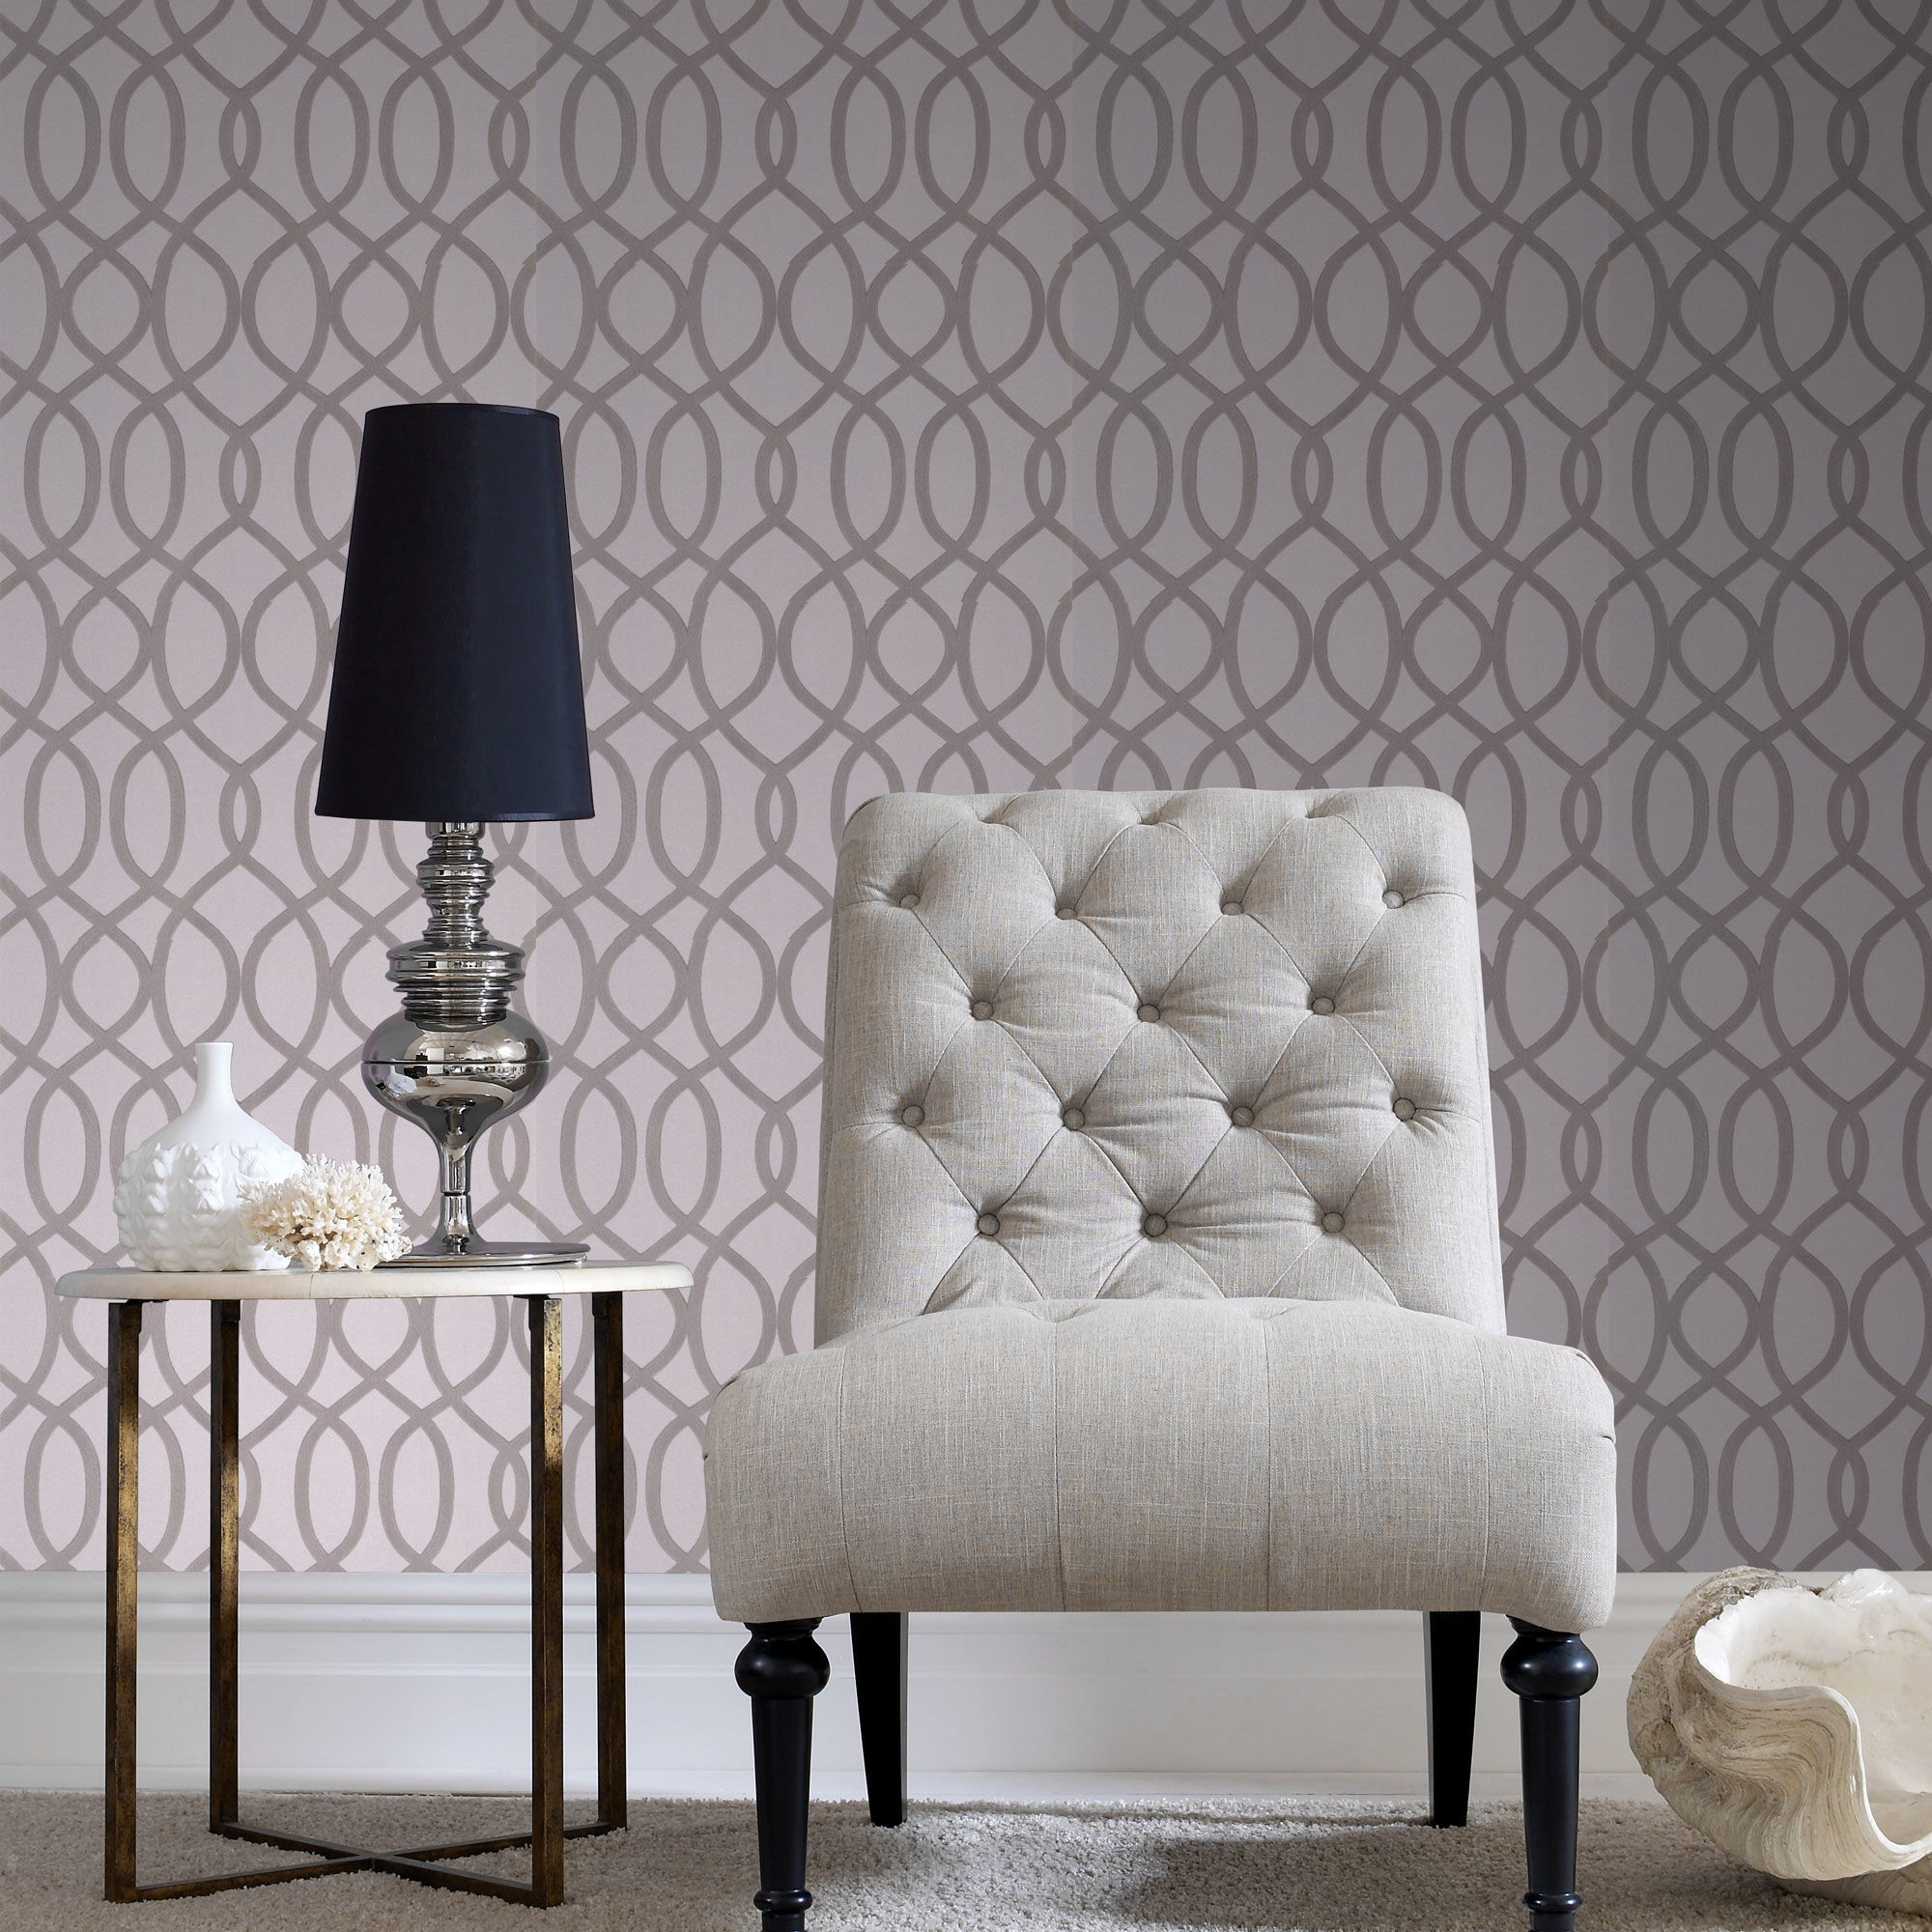 How to Clean Wallpaper | Washing Wallpaper | Cleaning Tips